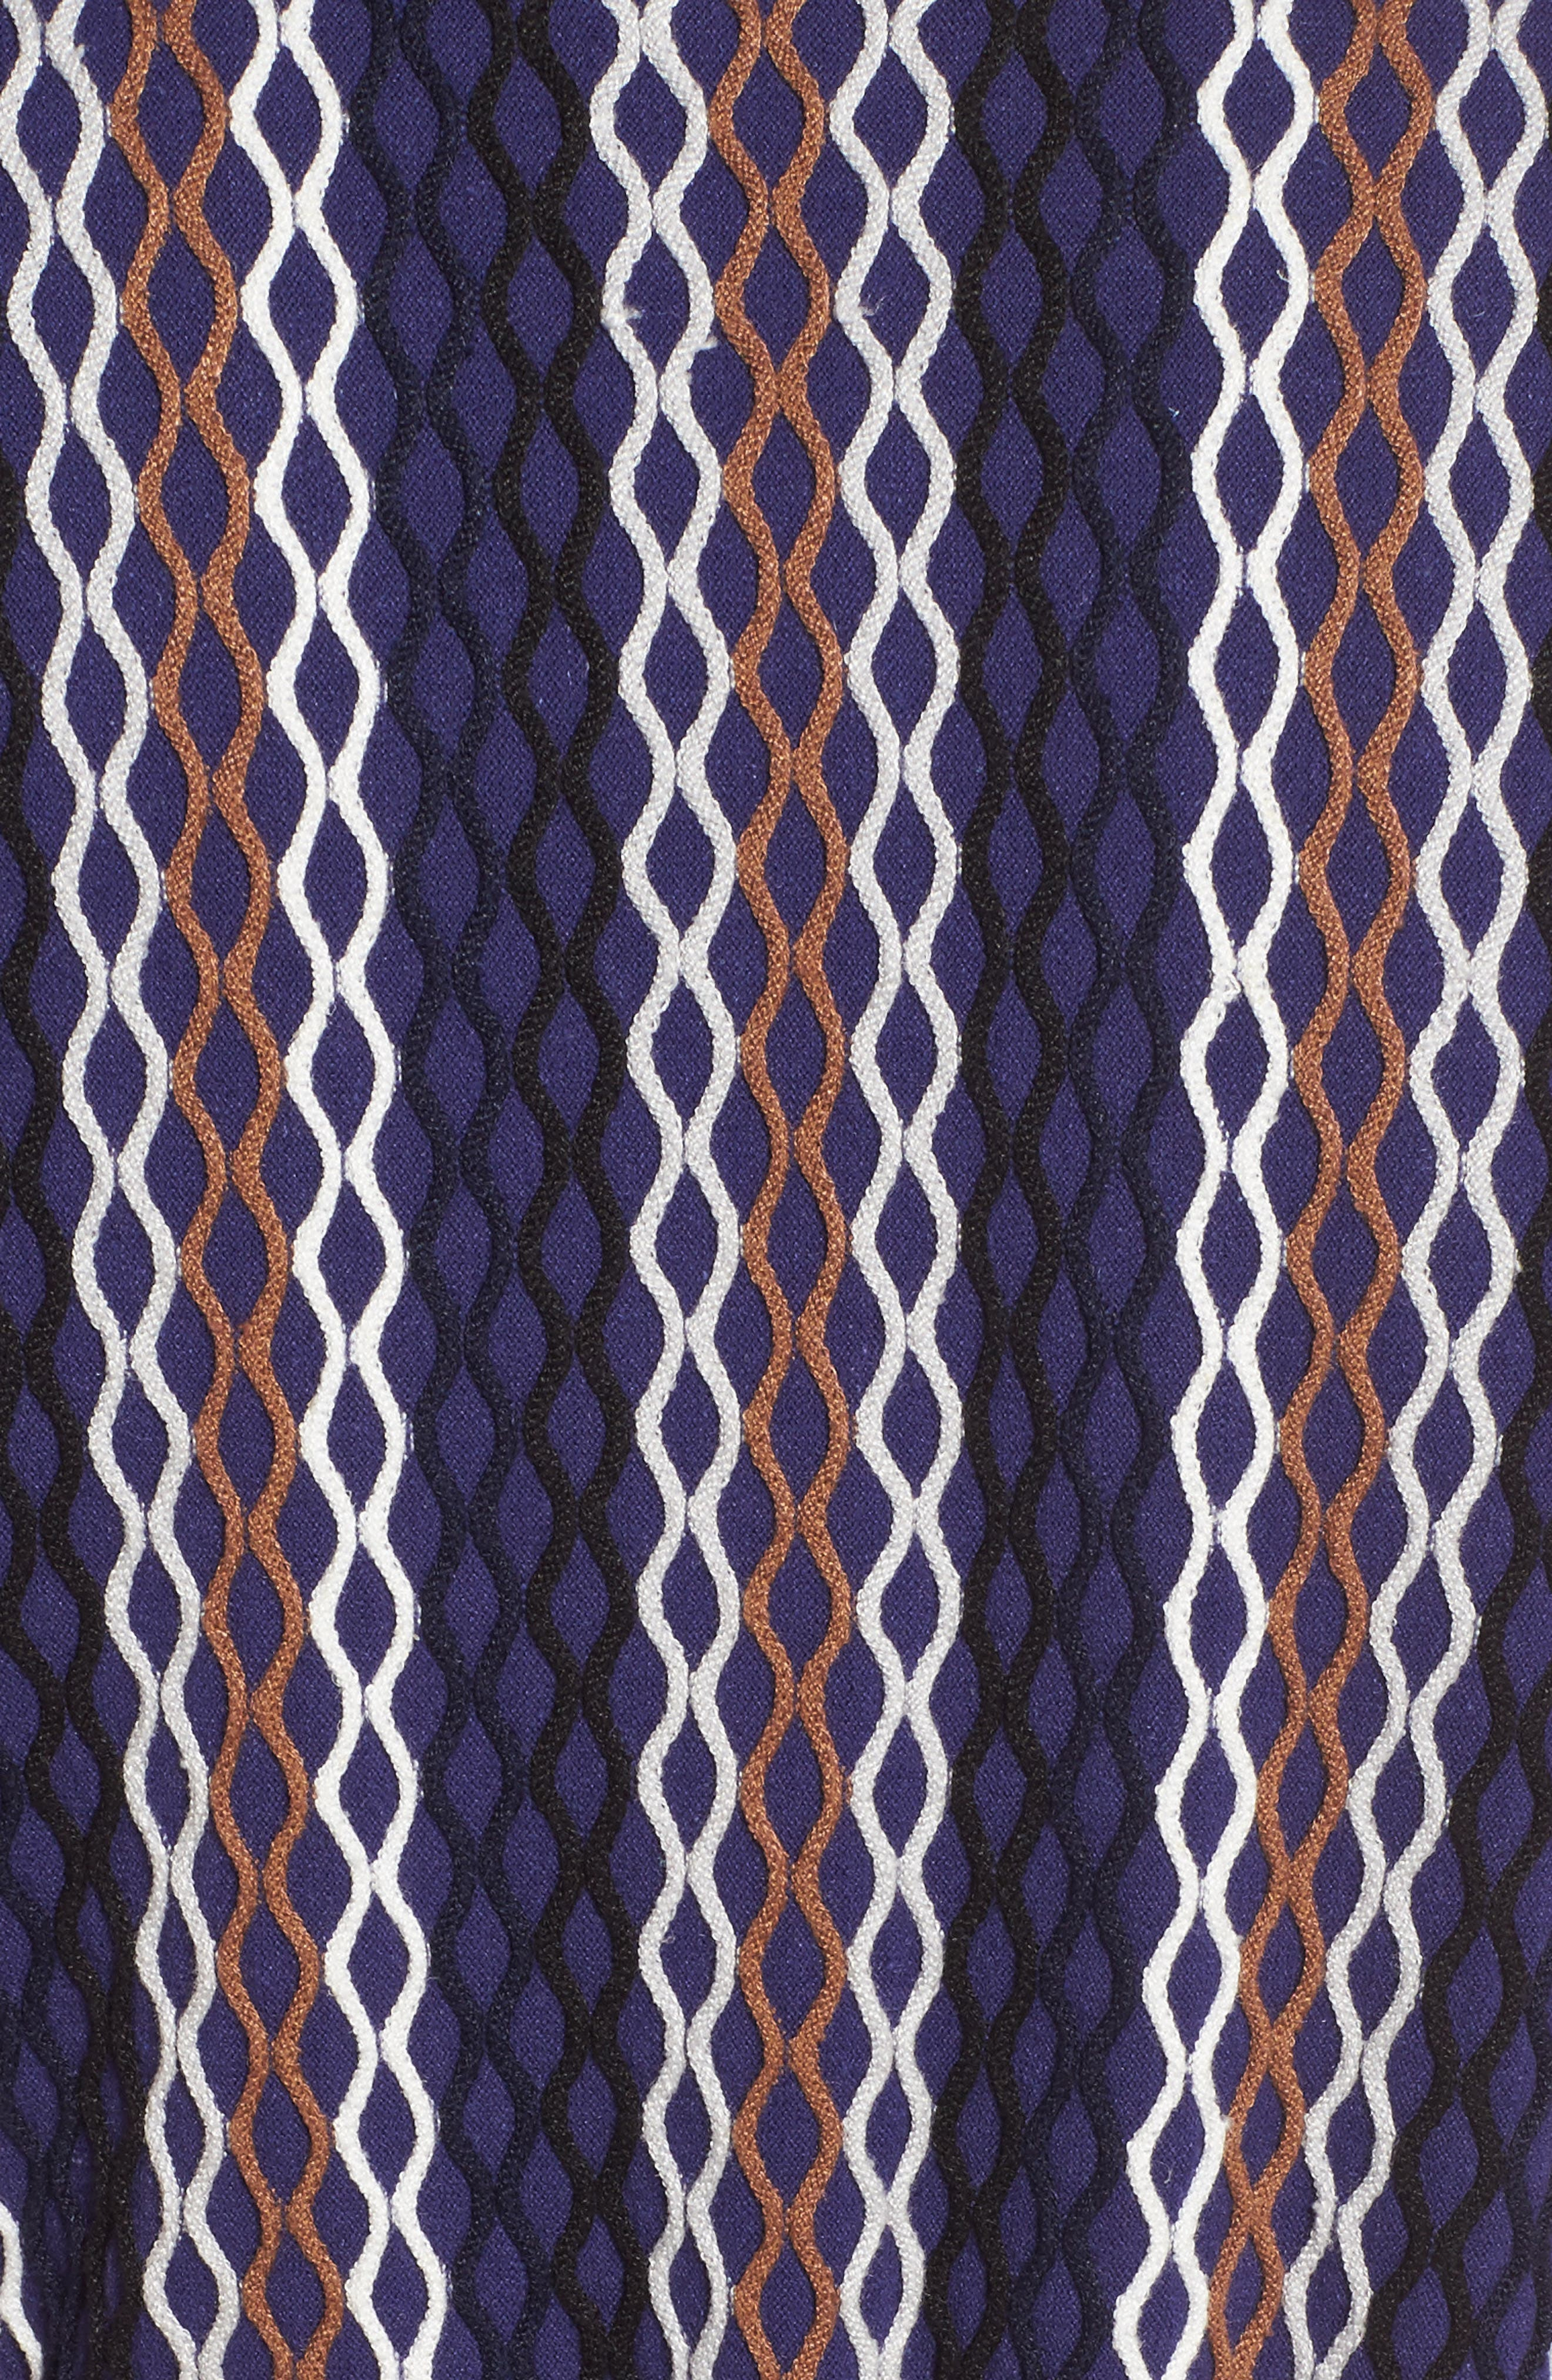 Squiggled Up Faux Wrap Dress,                             Alternate thumbnail 5, color,                             490